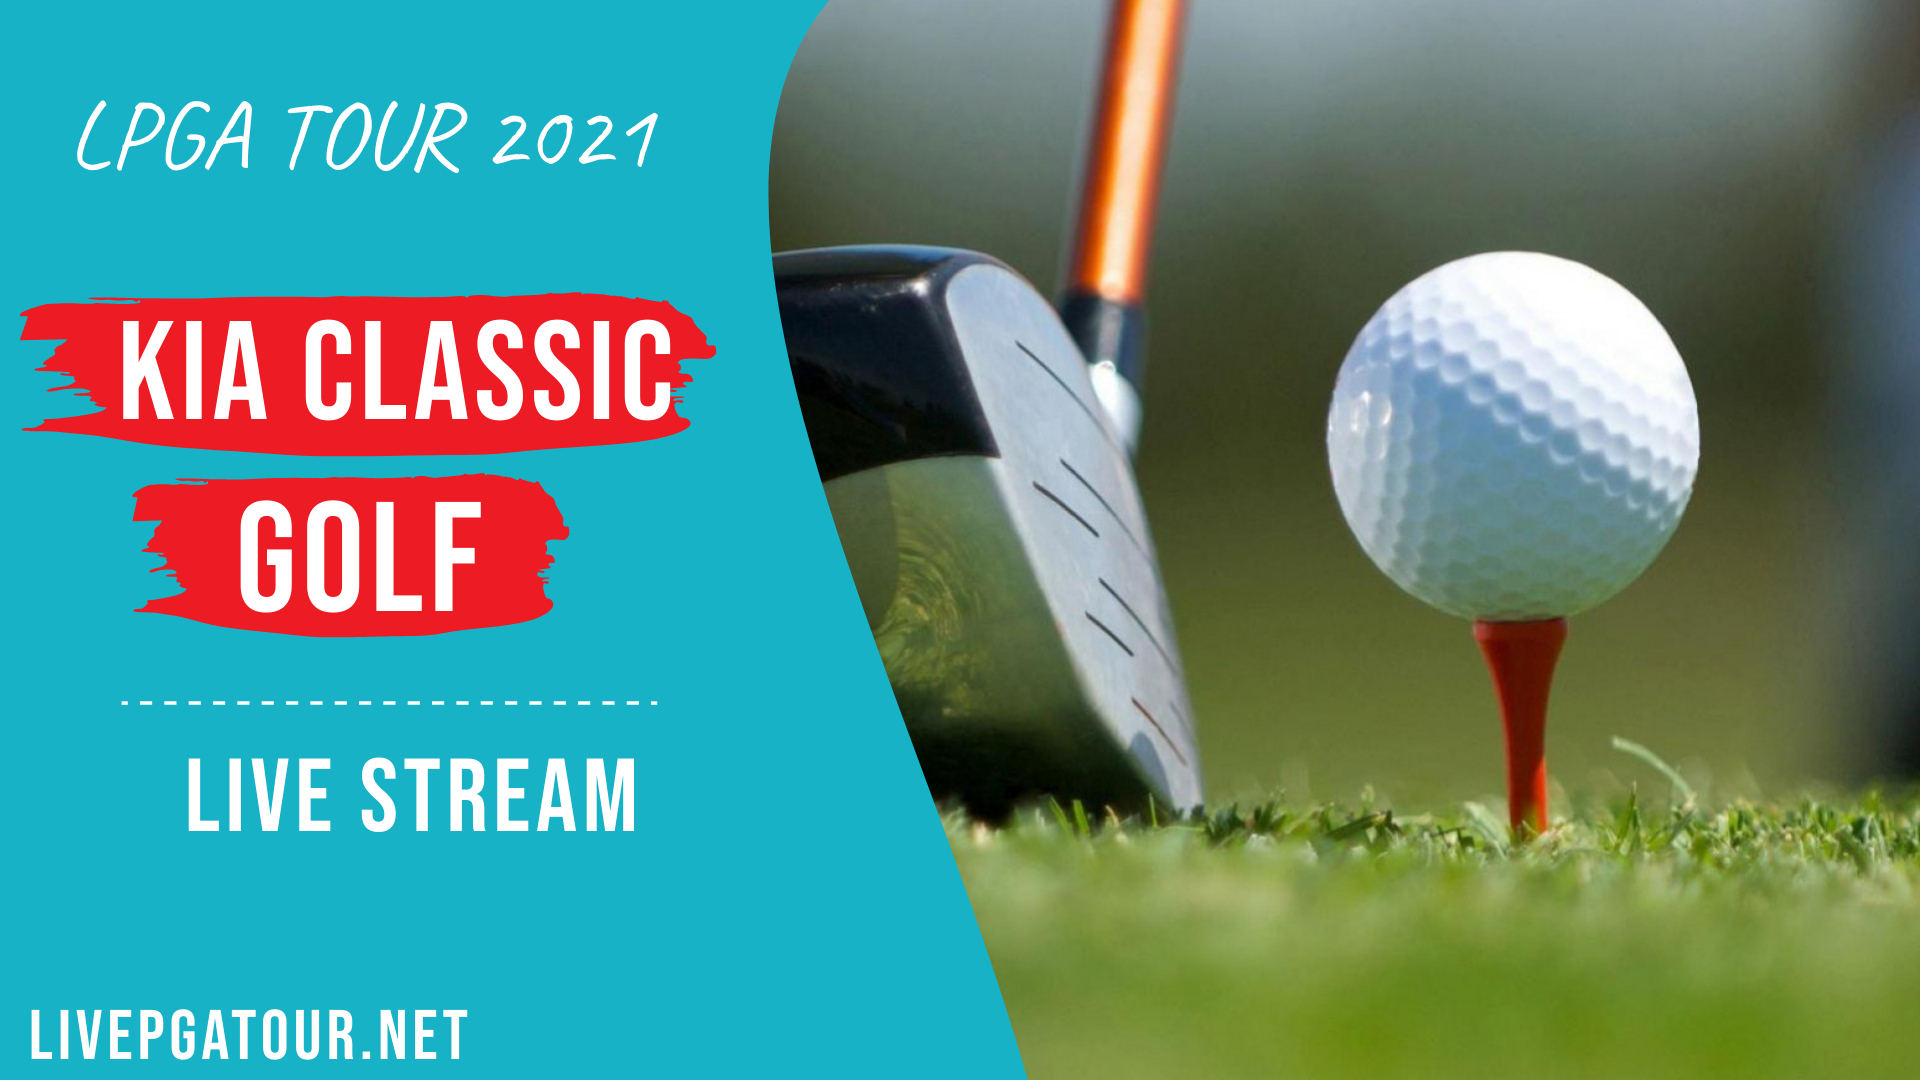 Kia Classic Golf Live Stream 2021: LPGA Tour Day 1